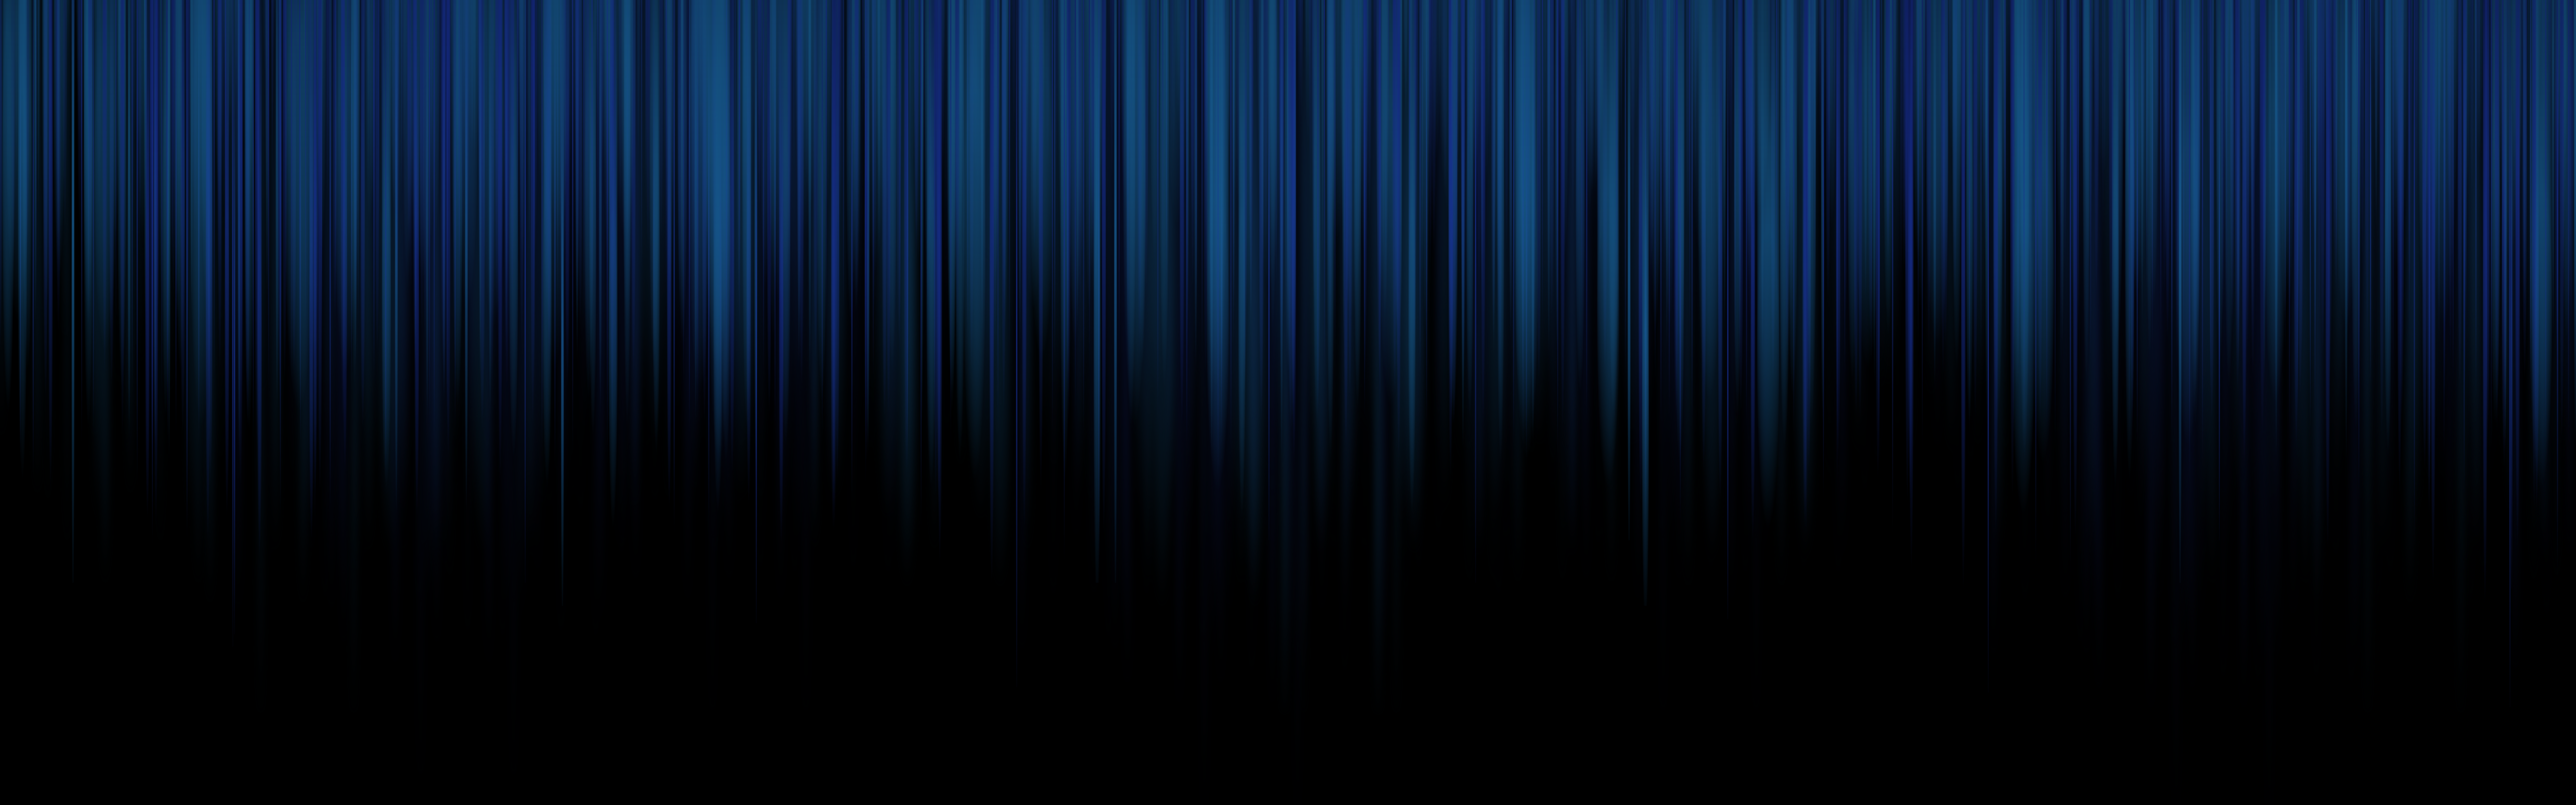 Full HD Wallpapers Backgrounds Blue Dual Screen by Dan Wiersema 5120x1600